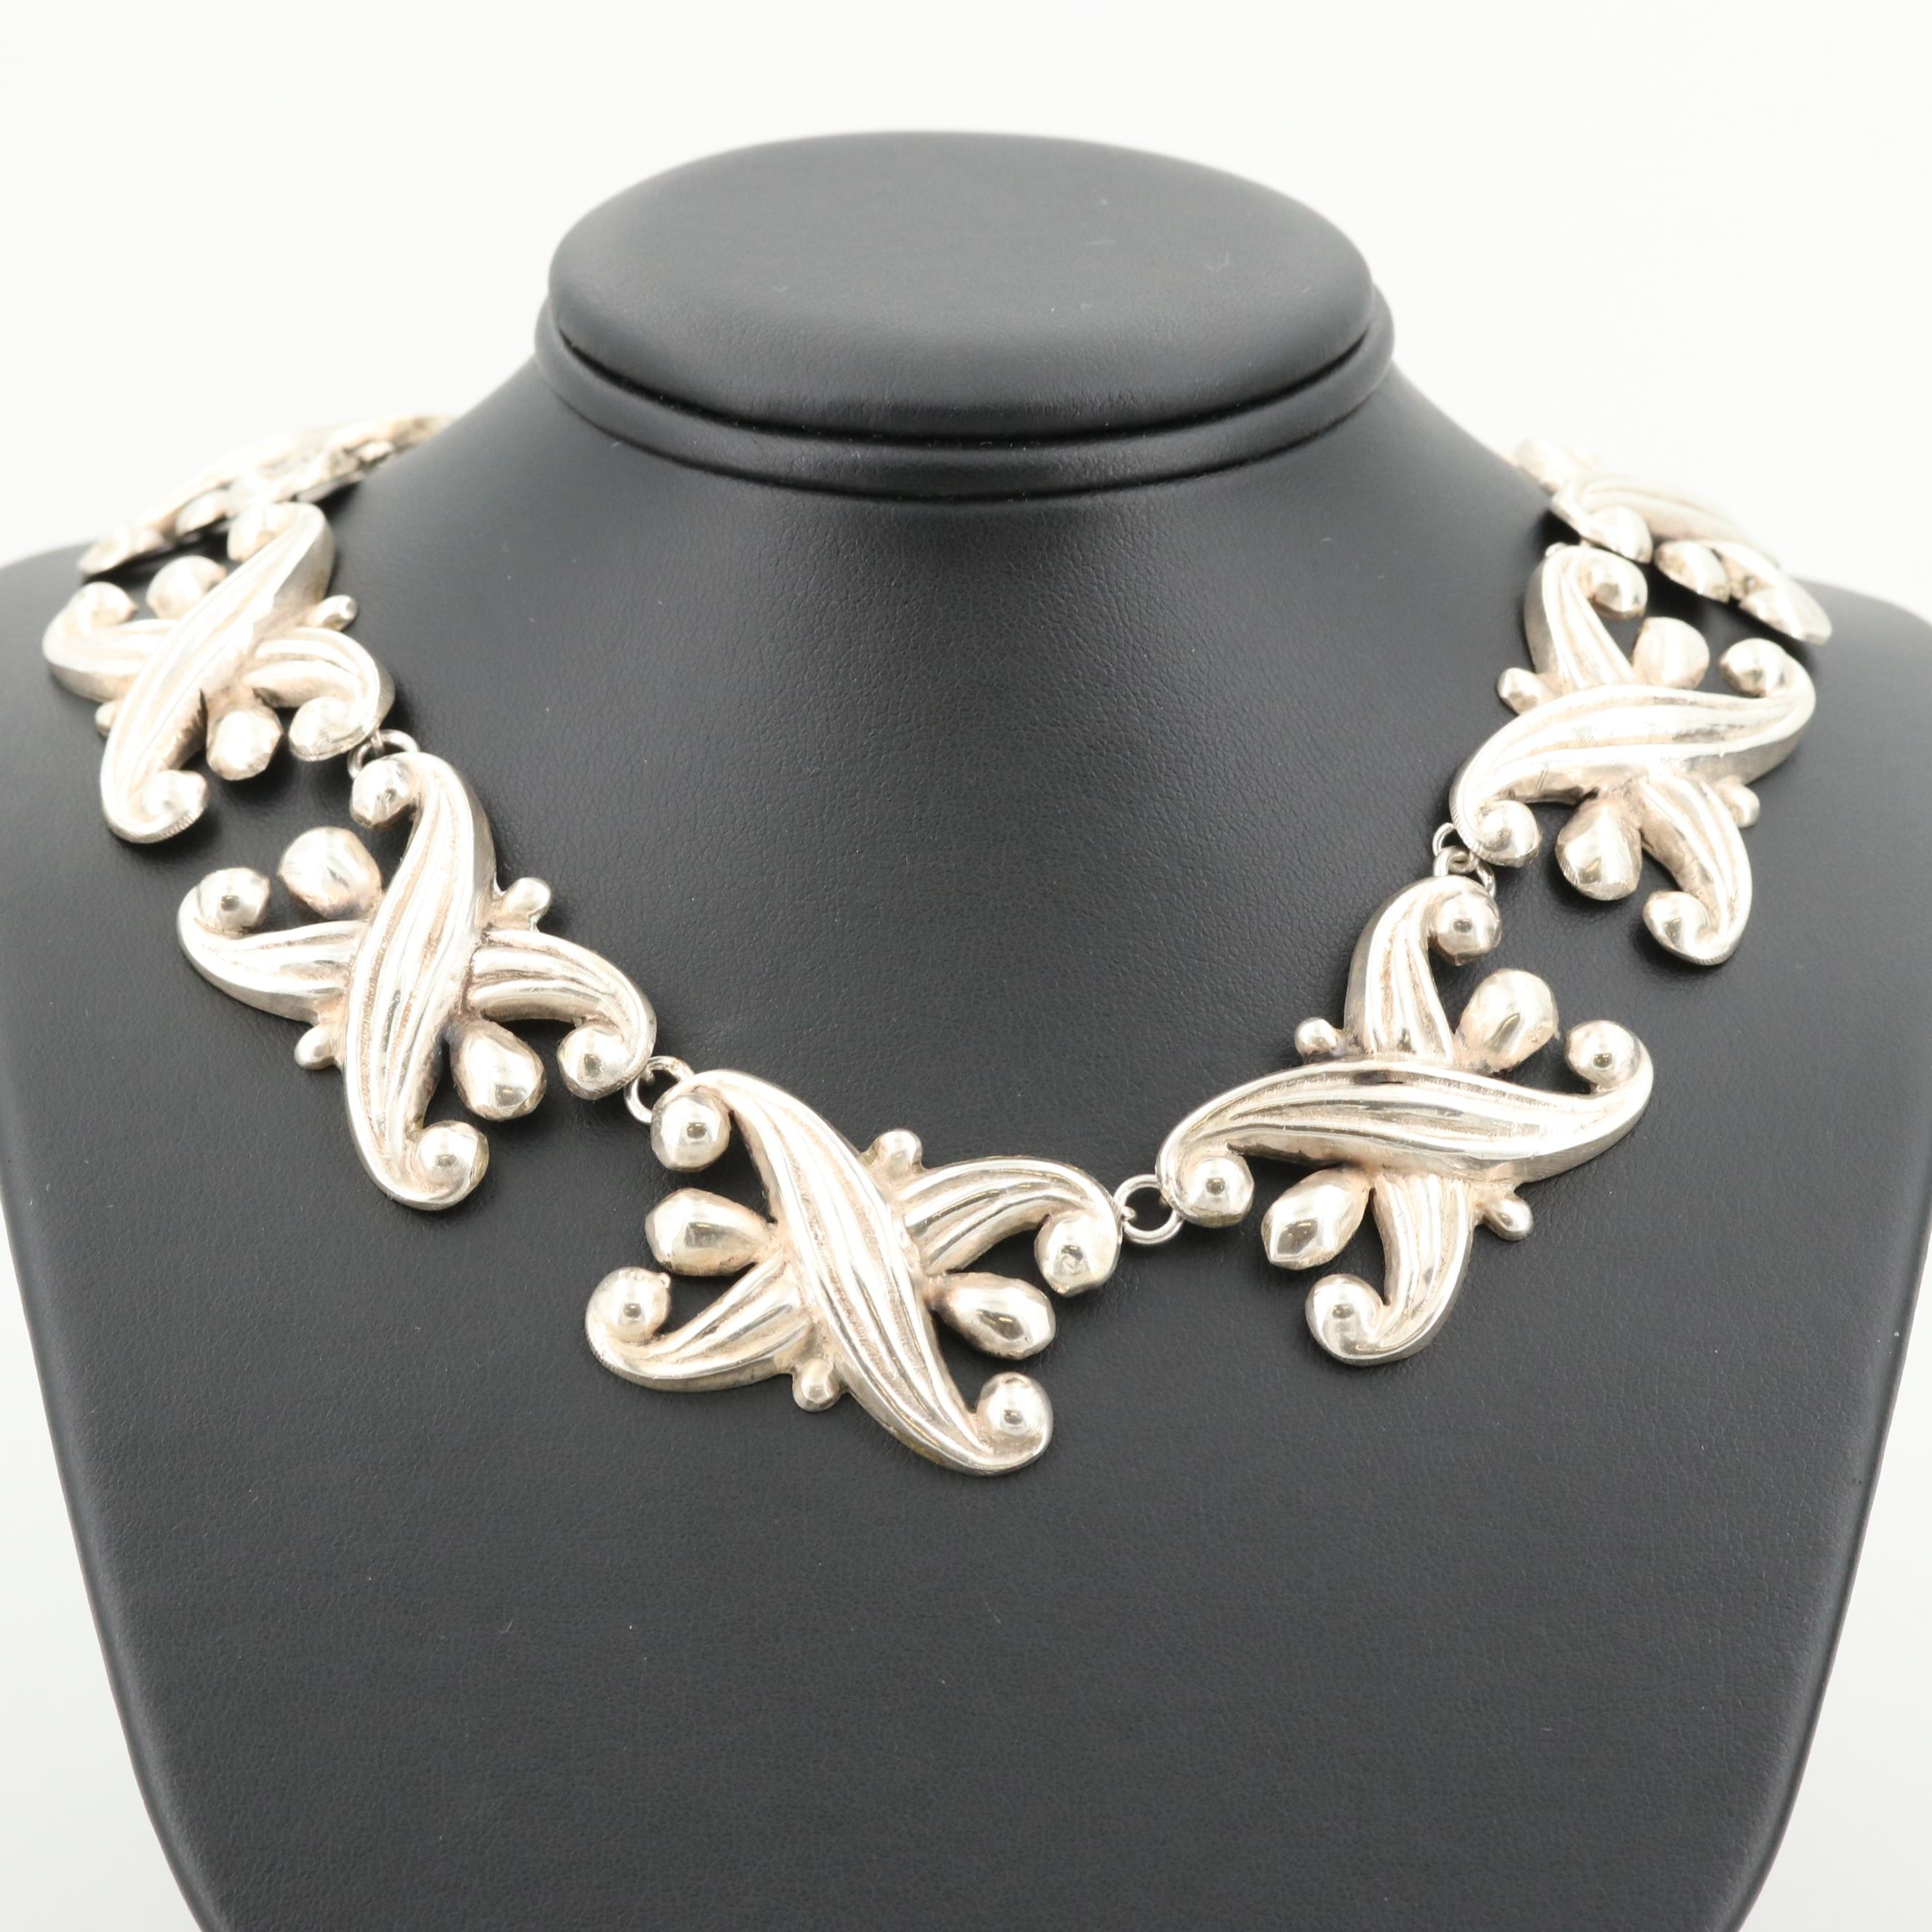 Circa 1930 Mexican Sterling Silver Linked Necklace